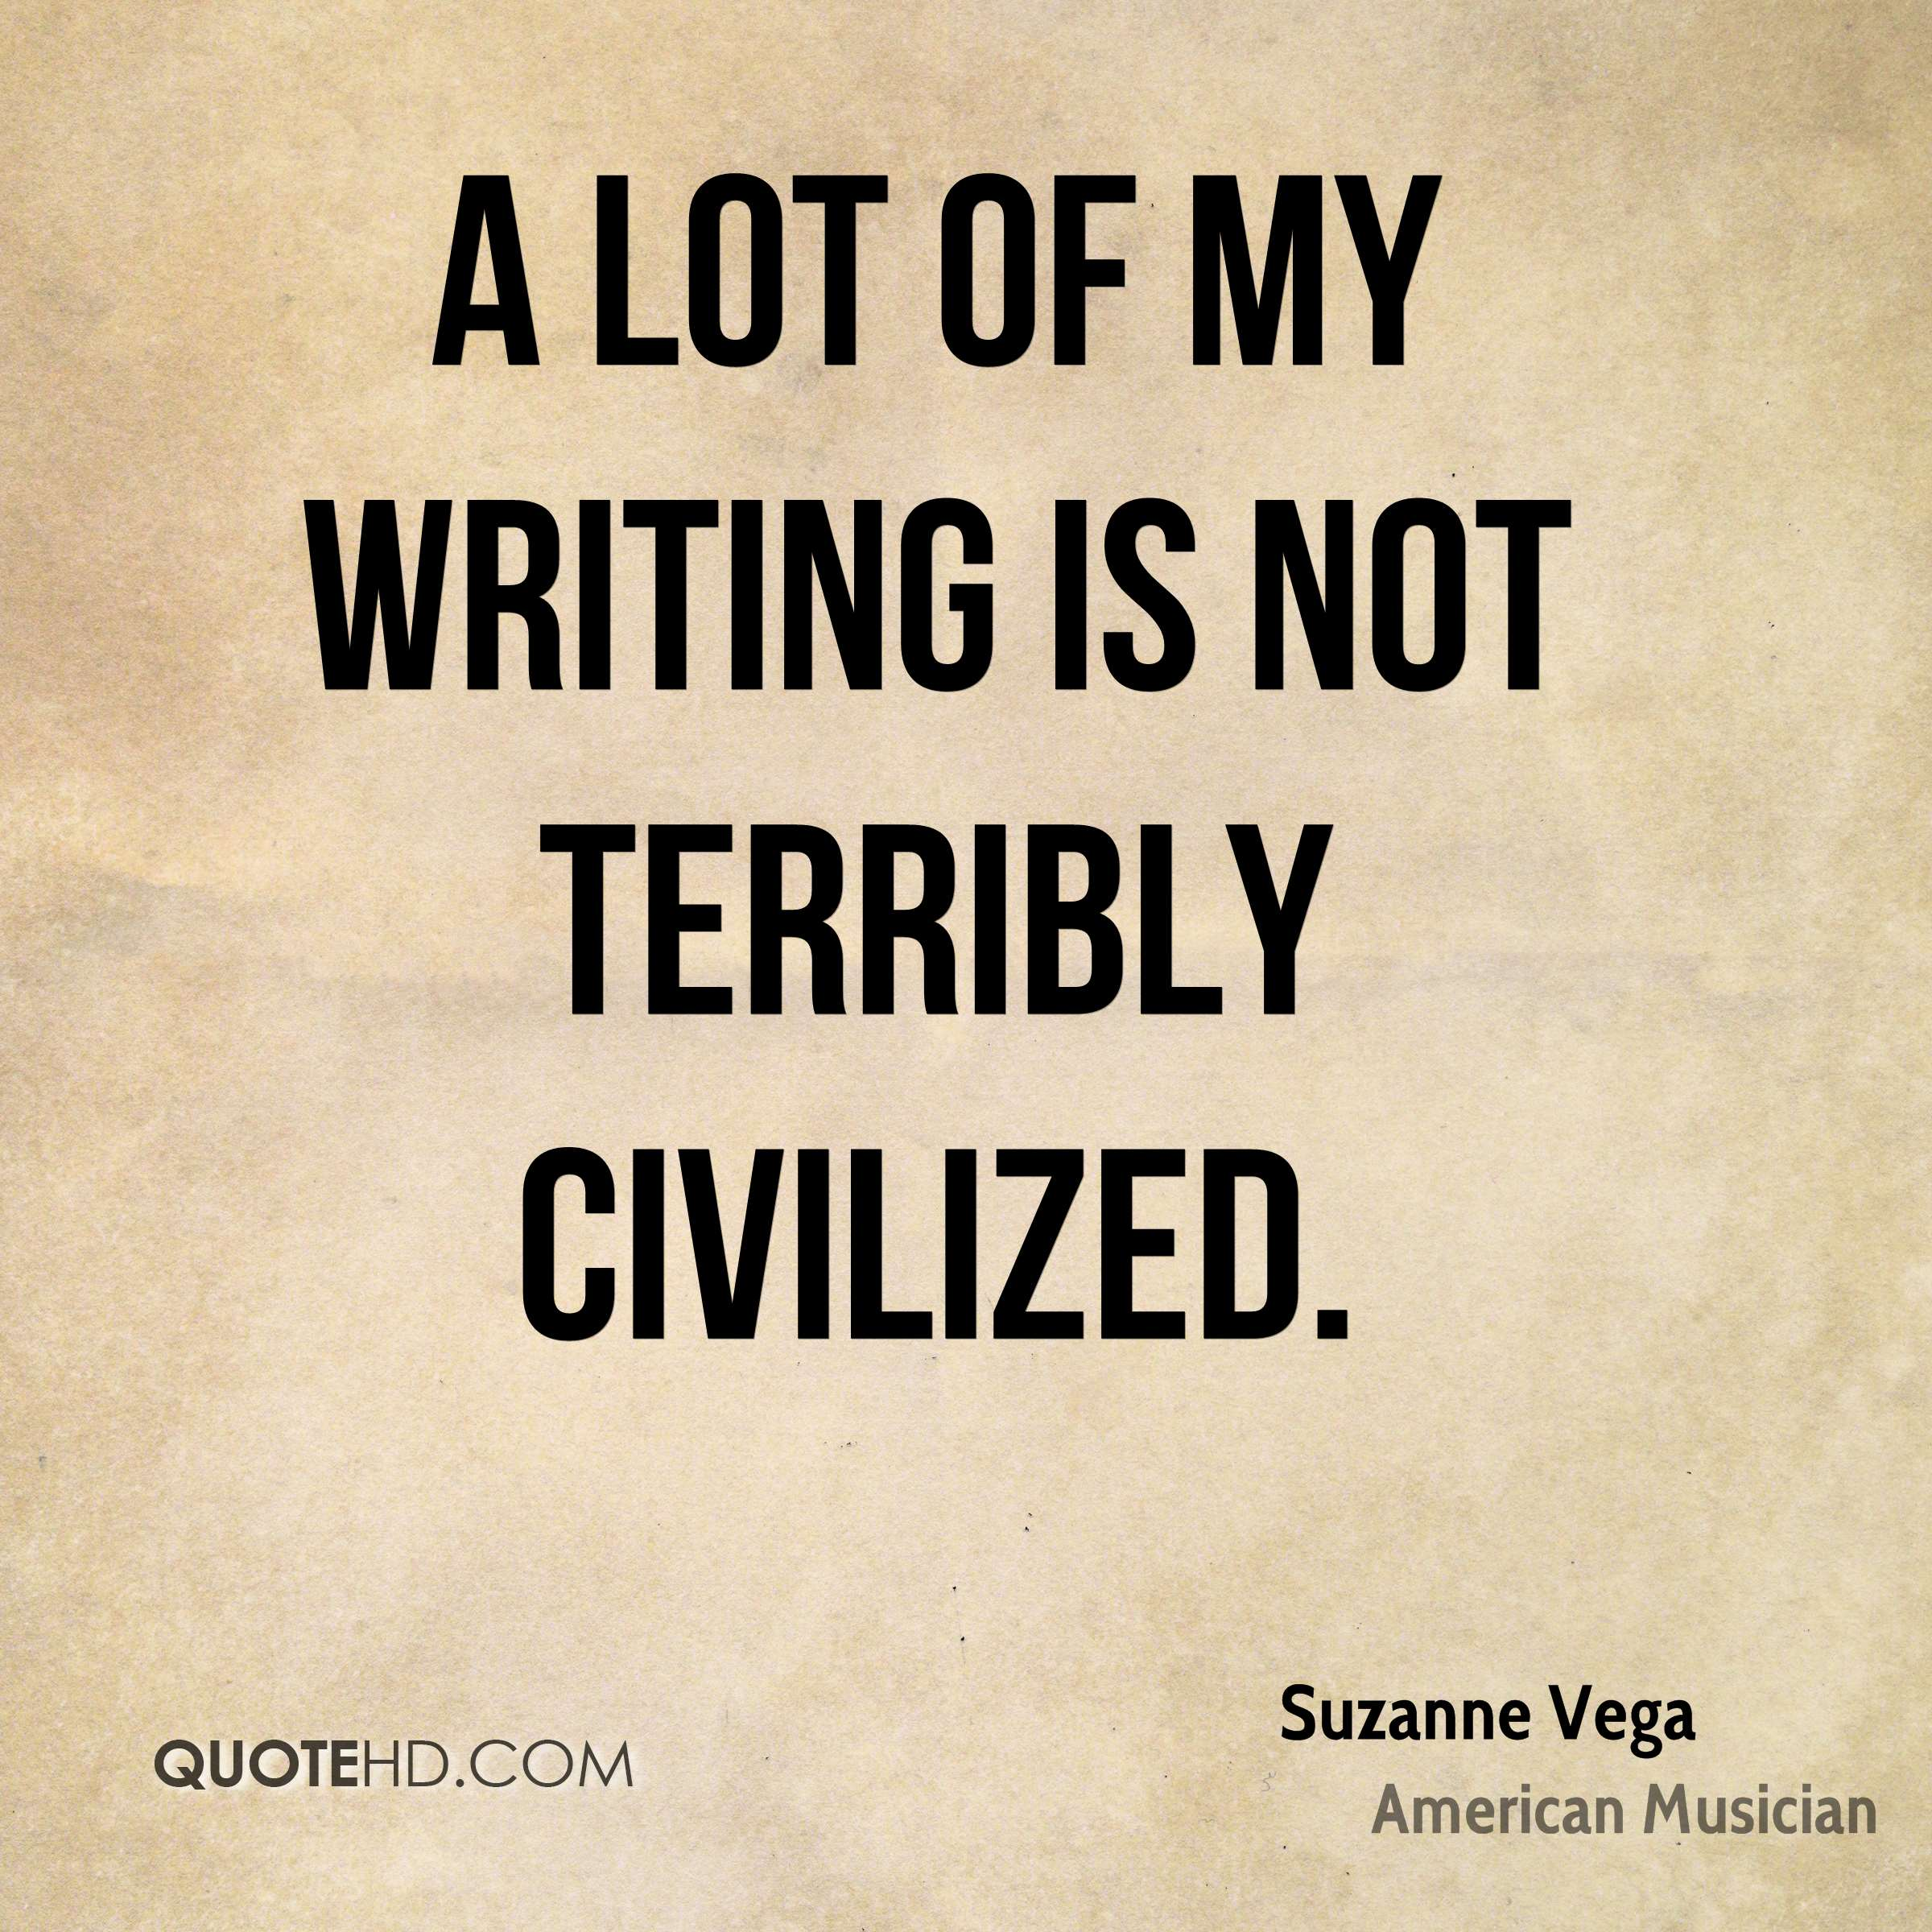 A lot of my writing is not terribly civilized.